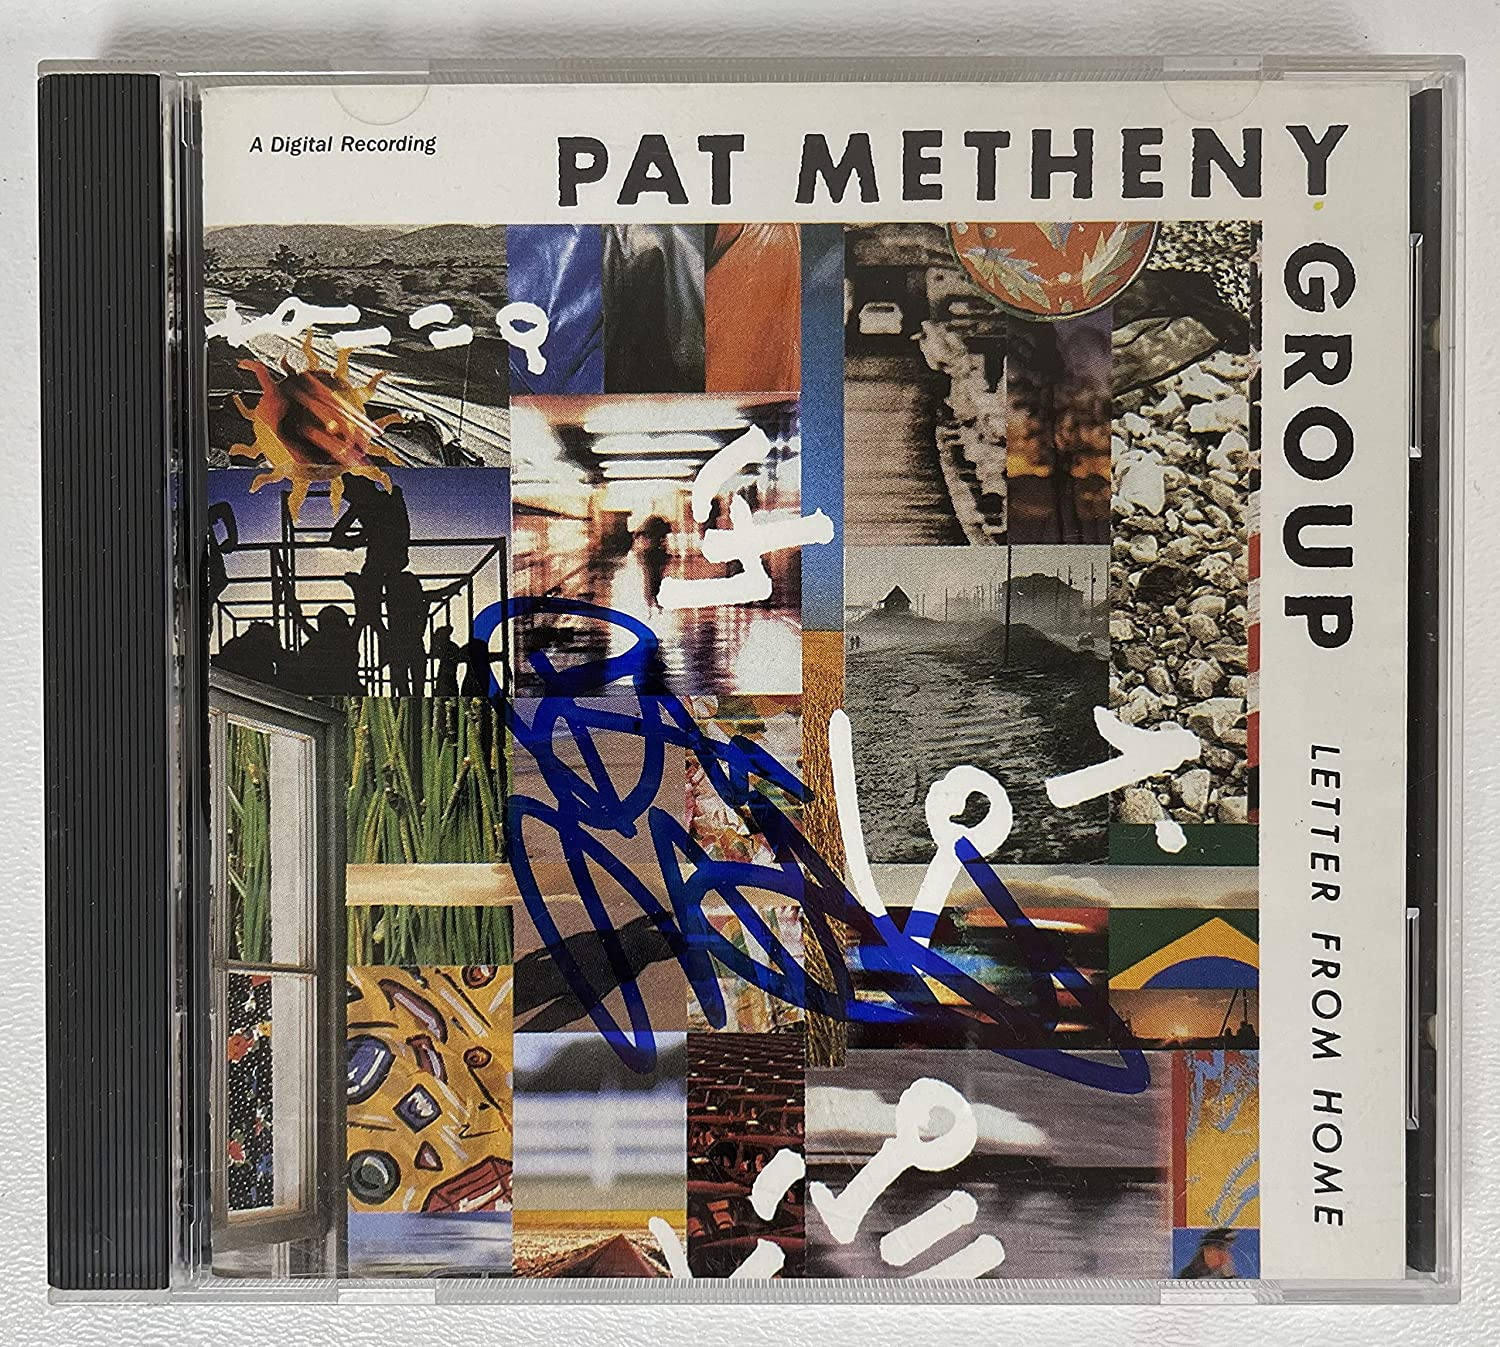 Pat Metheny Signed Autographed 'Letter From Home' Music CD - COA Matching Holograms